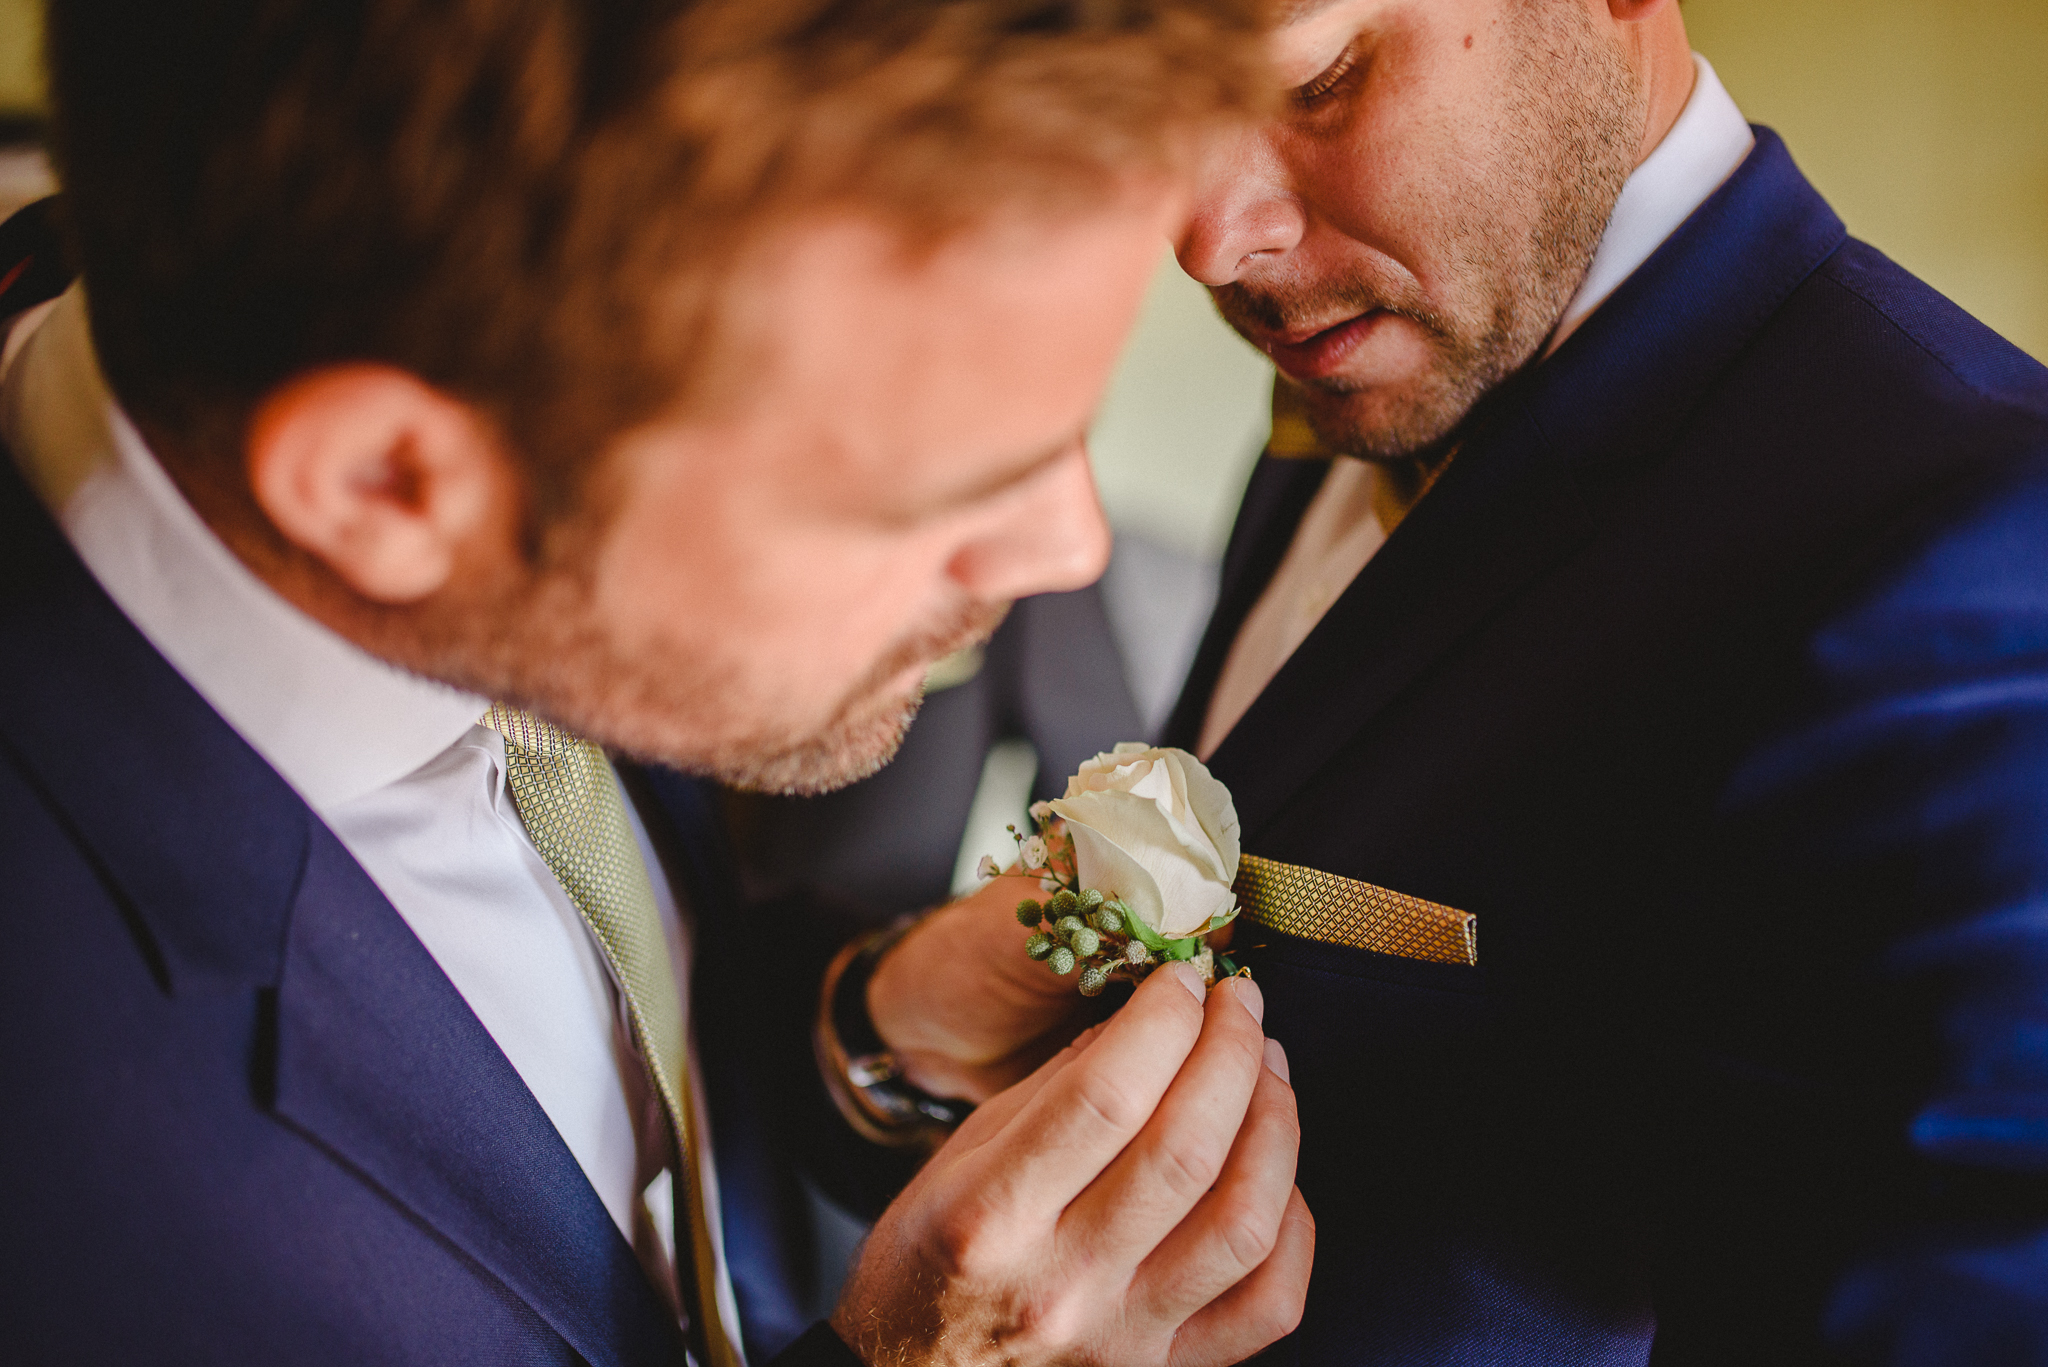 Best man helping groom with his boutonnière.